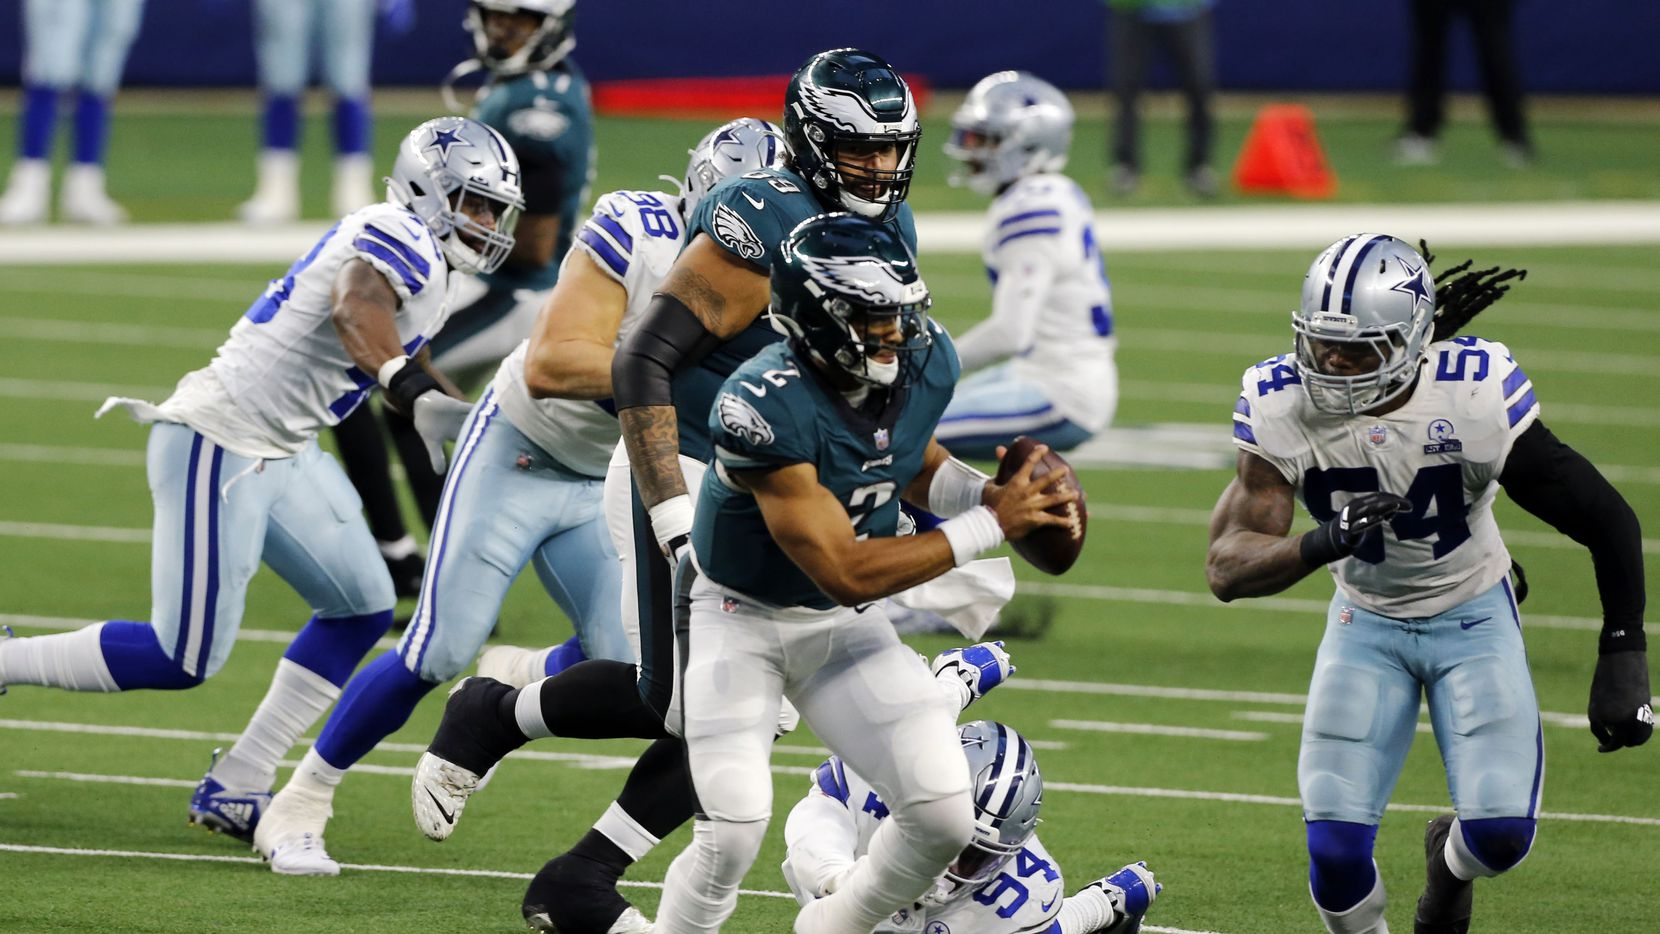 Philadelphia Eagles quarterback Jalen Hurts (2) is boxed in by Dallas Cowboys defensive end Randy Gregory (94) and middle linebacker Jaylon Smith (54) during the second half of a NFL football playoff game between against the Philadelphia Eagles and the Dallas Cowboys at AT&T Stadium in Arlington on Sunday, December 27, 2020. The Cowboys won 37-17.